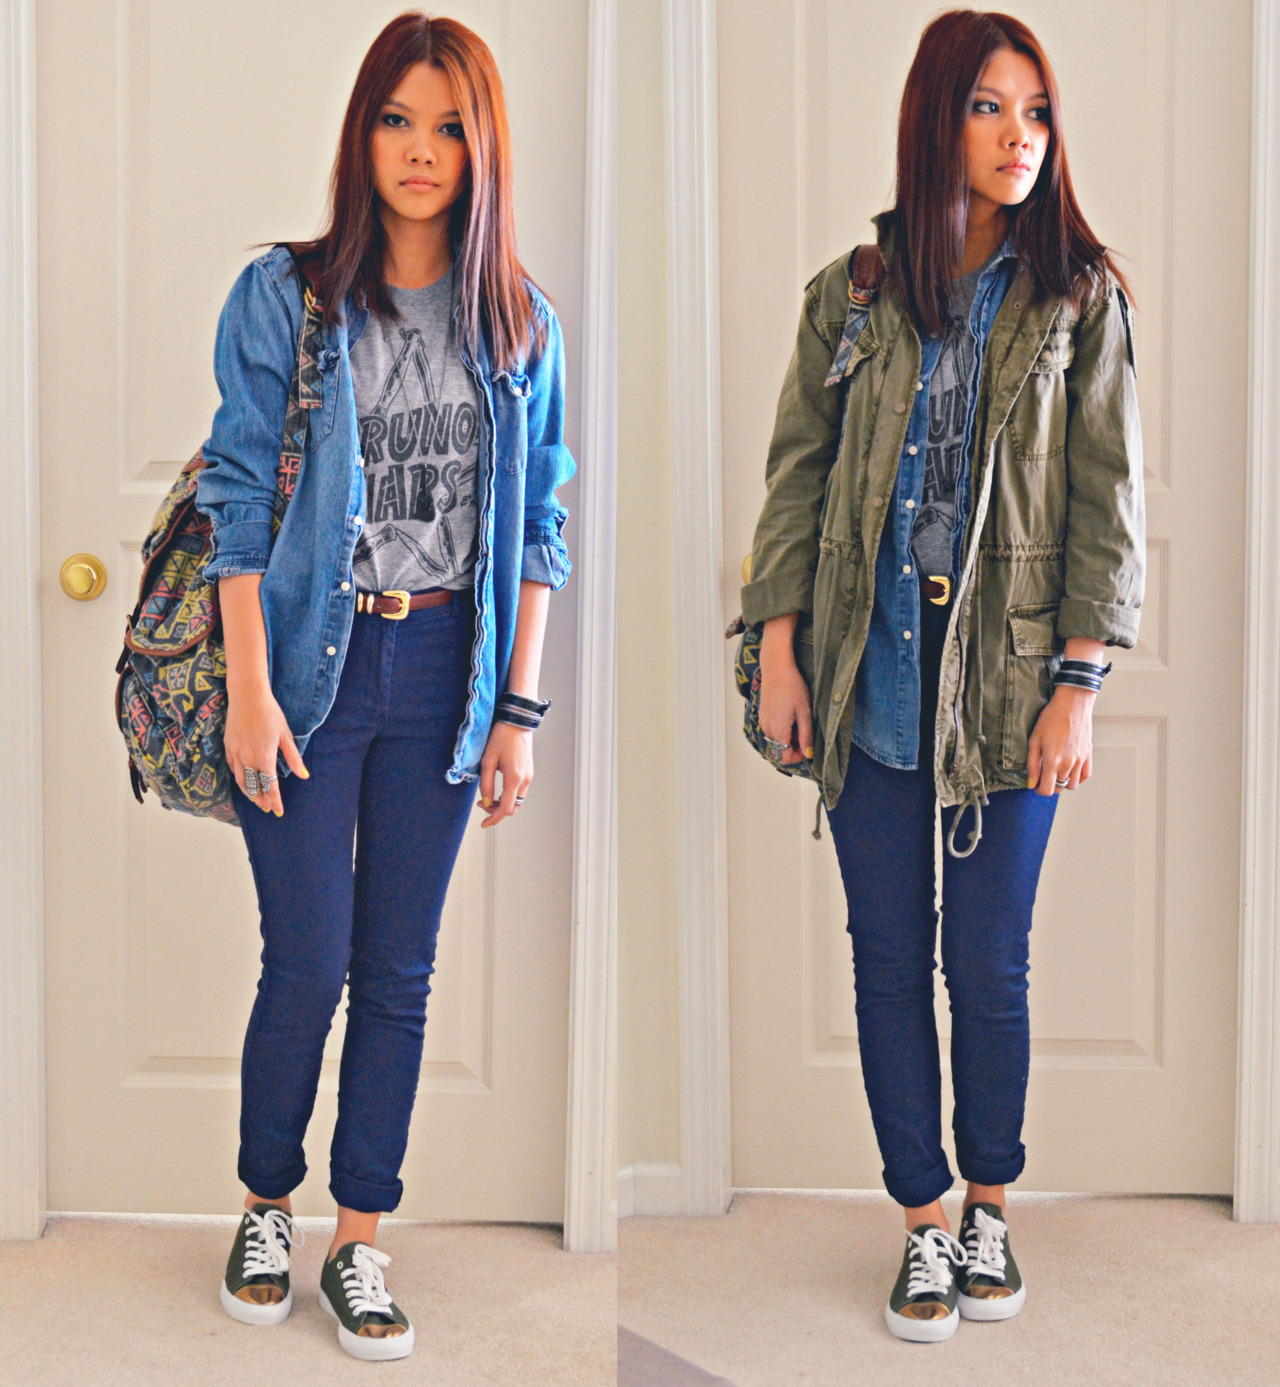 http://thatflipchic.tumblr.com OOTD: Parka Bruno Mars Shirt - from Bruno Mars concert Denim Shirt - H&M Parka - Aritzia Pants - H&M Shoes - XX1 Backpack - Urban Outfitters